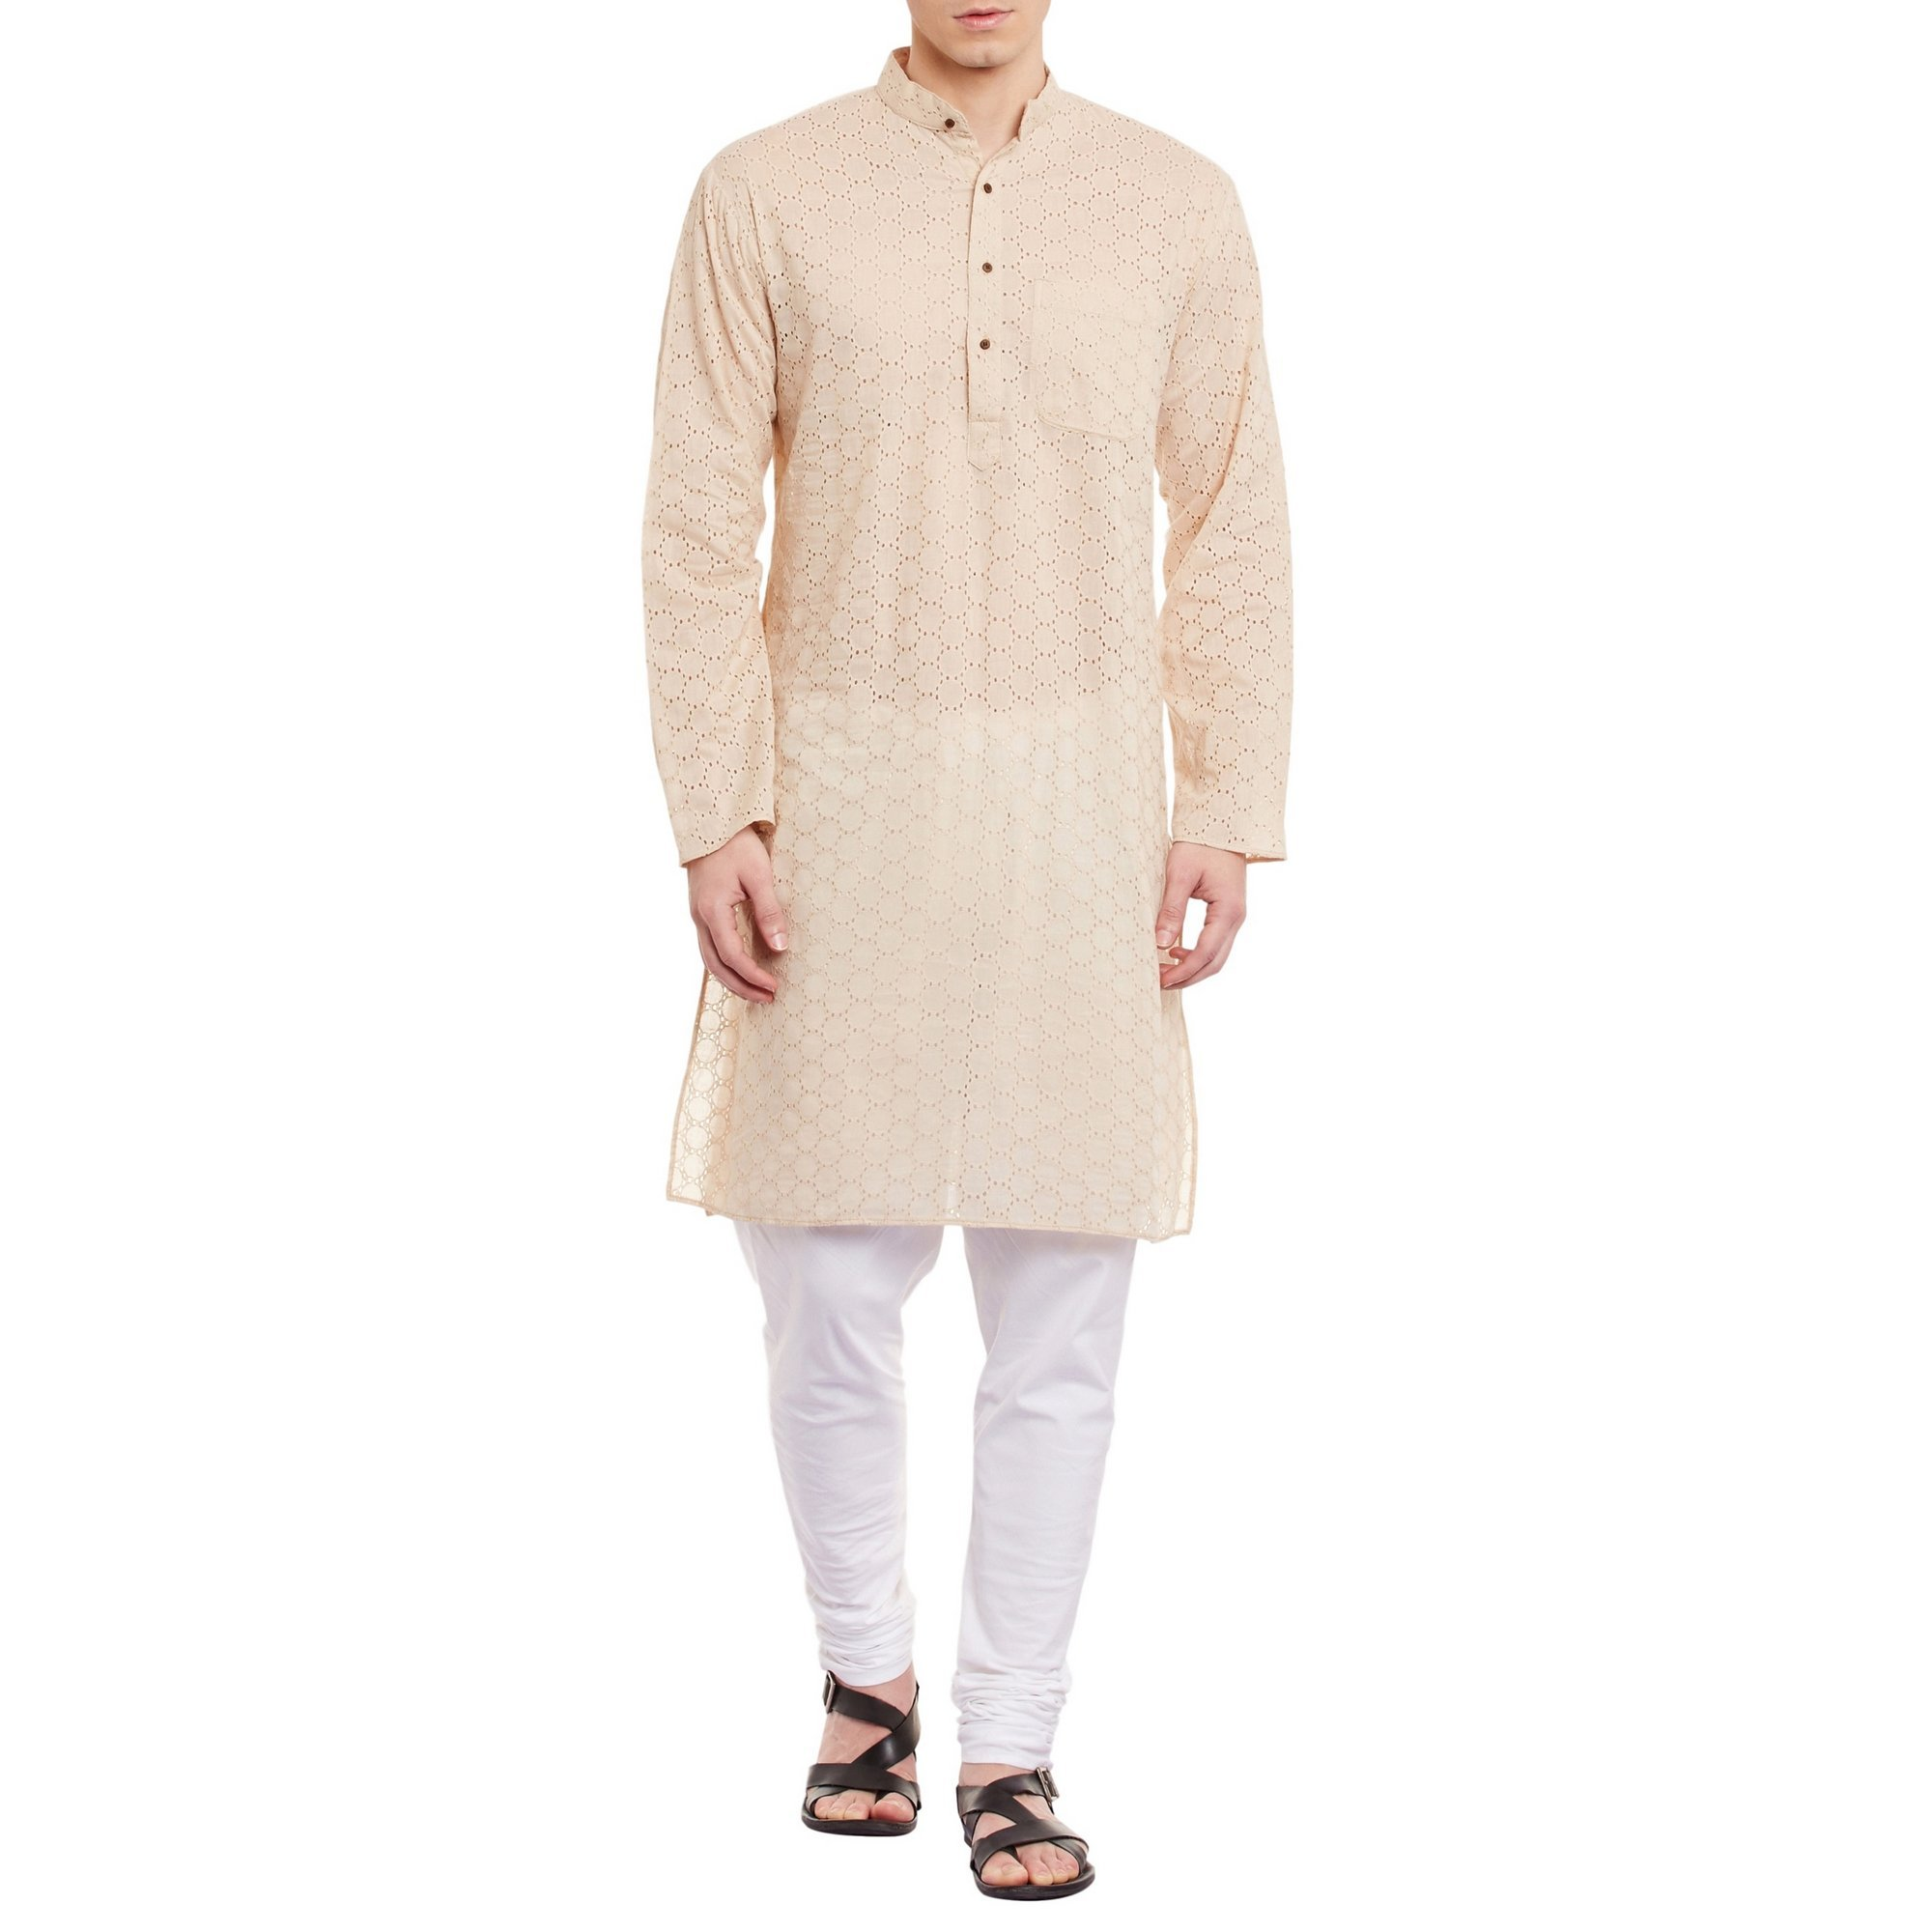 Mens Embroidered Cutwork Cotton Kurta With Churidar Pajama Trousers Machine Embroidery,Beige Chest Size: 46 Inch